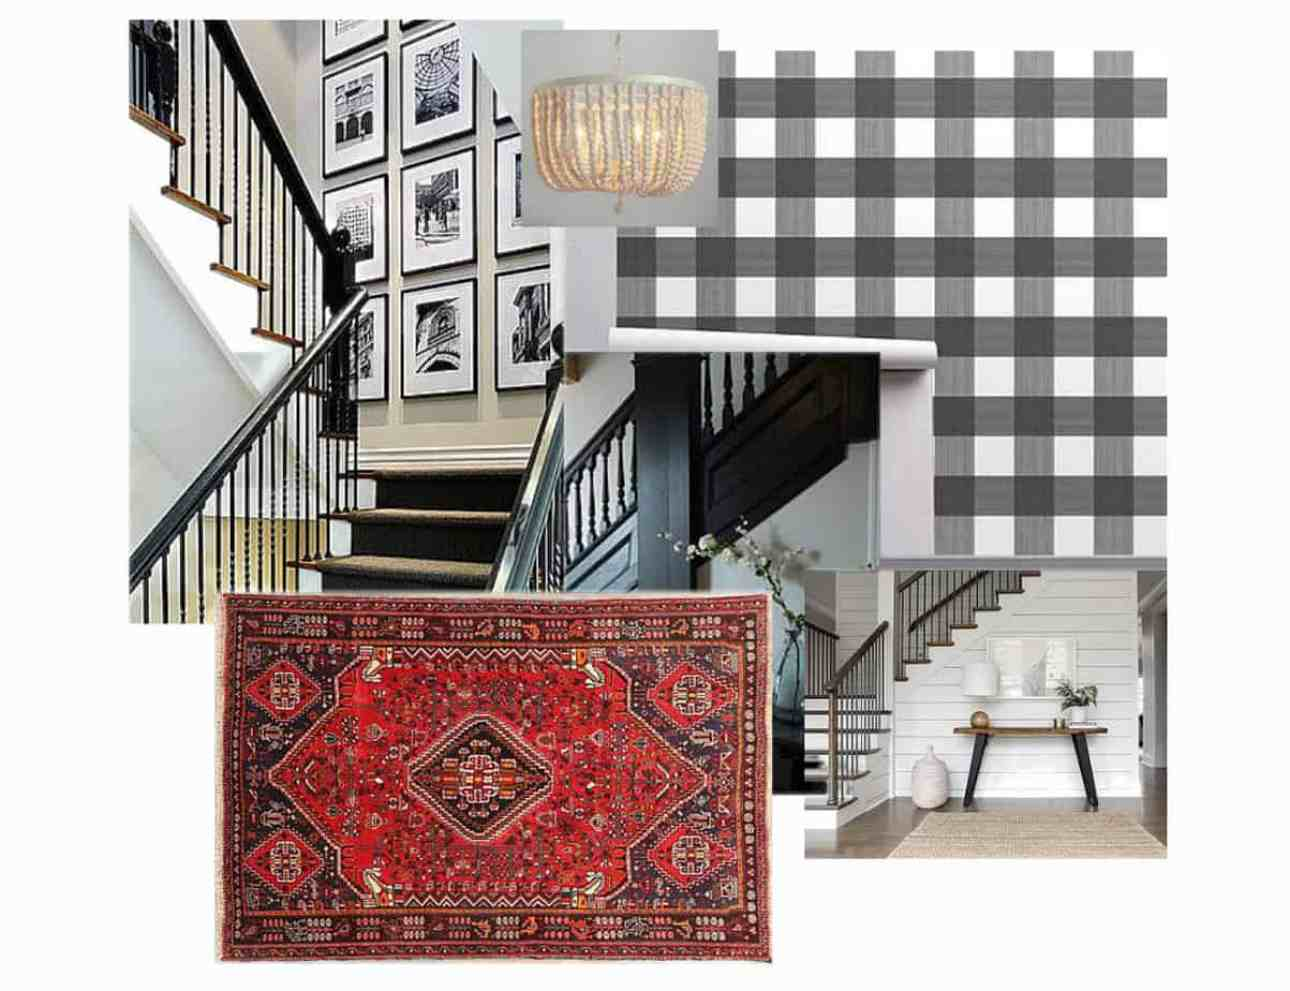 A mood board with a Persian rug, buffalo check wallpaper and a chandelier.